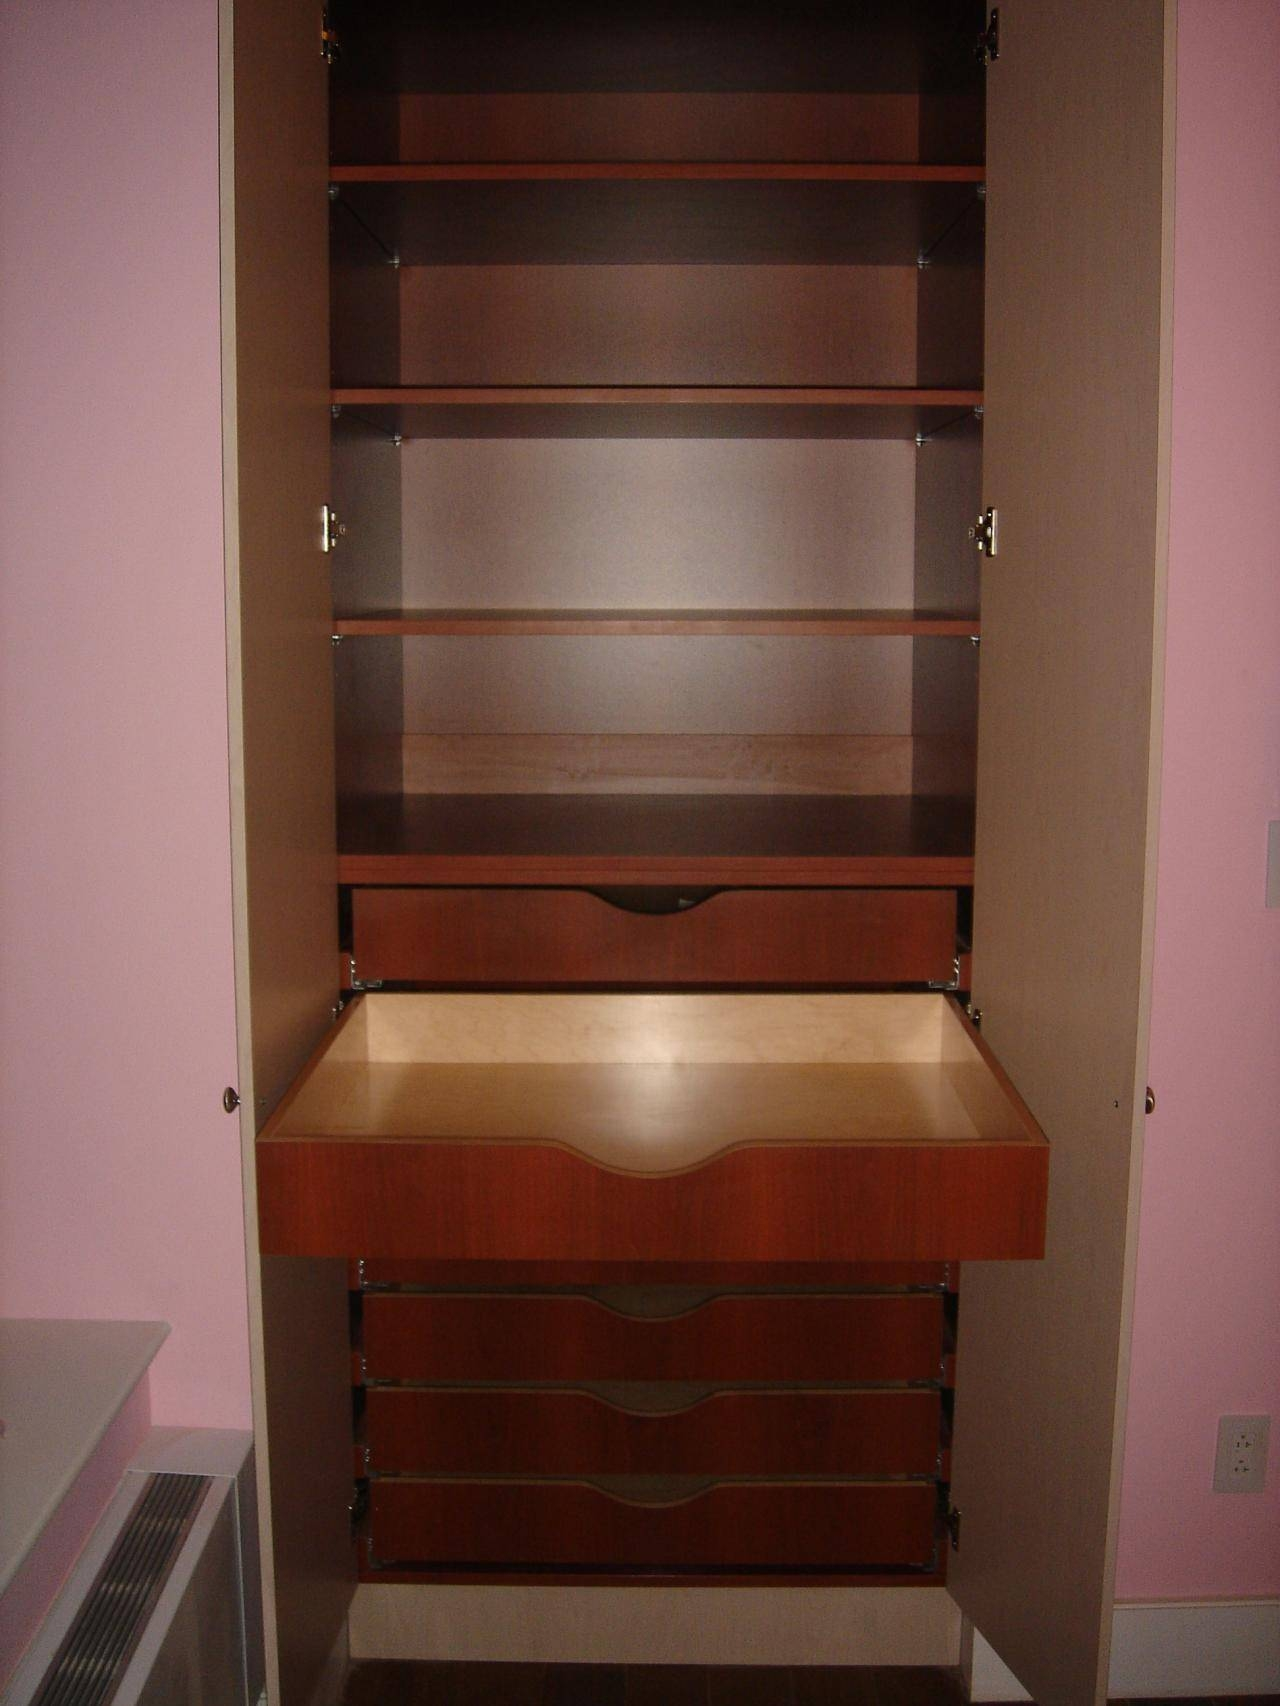 Double White Drawers Under The Shelves Also Hanging Space Combined with regard to Double Wardrobe With Drawers and Shelves (Image 12 of 30)